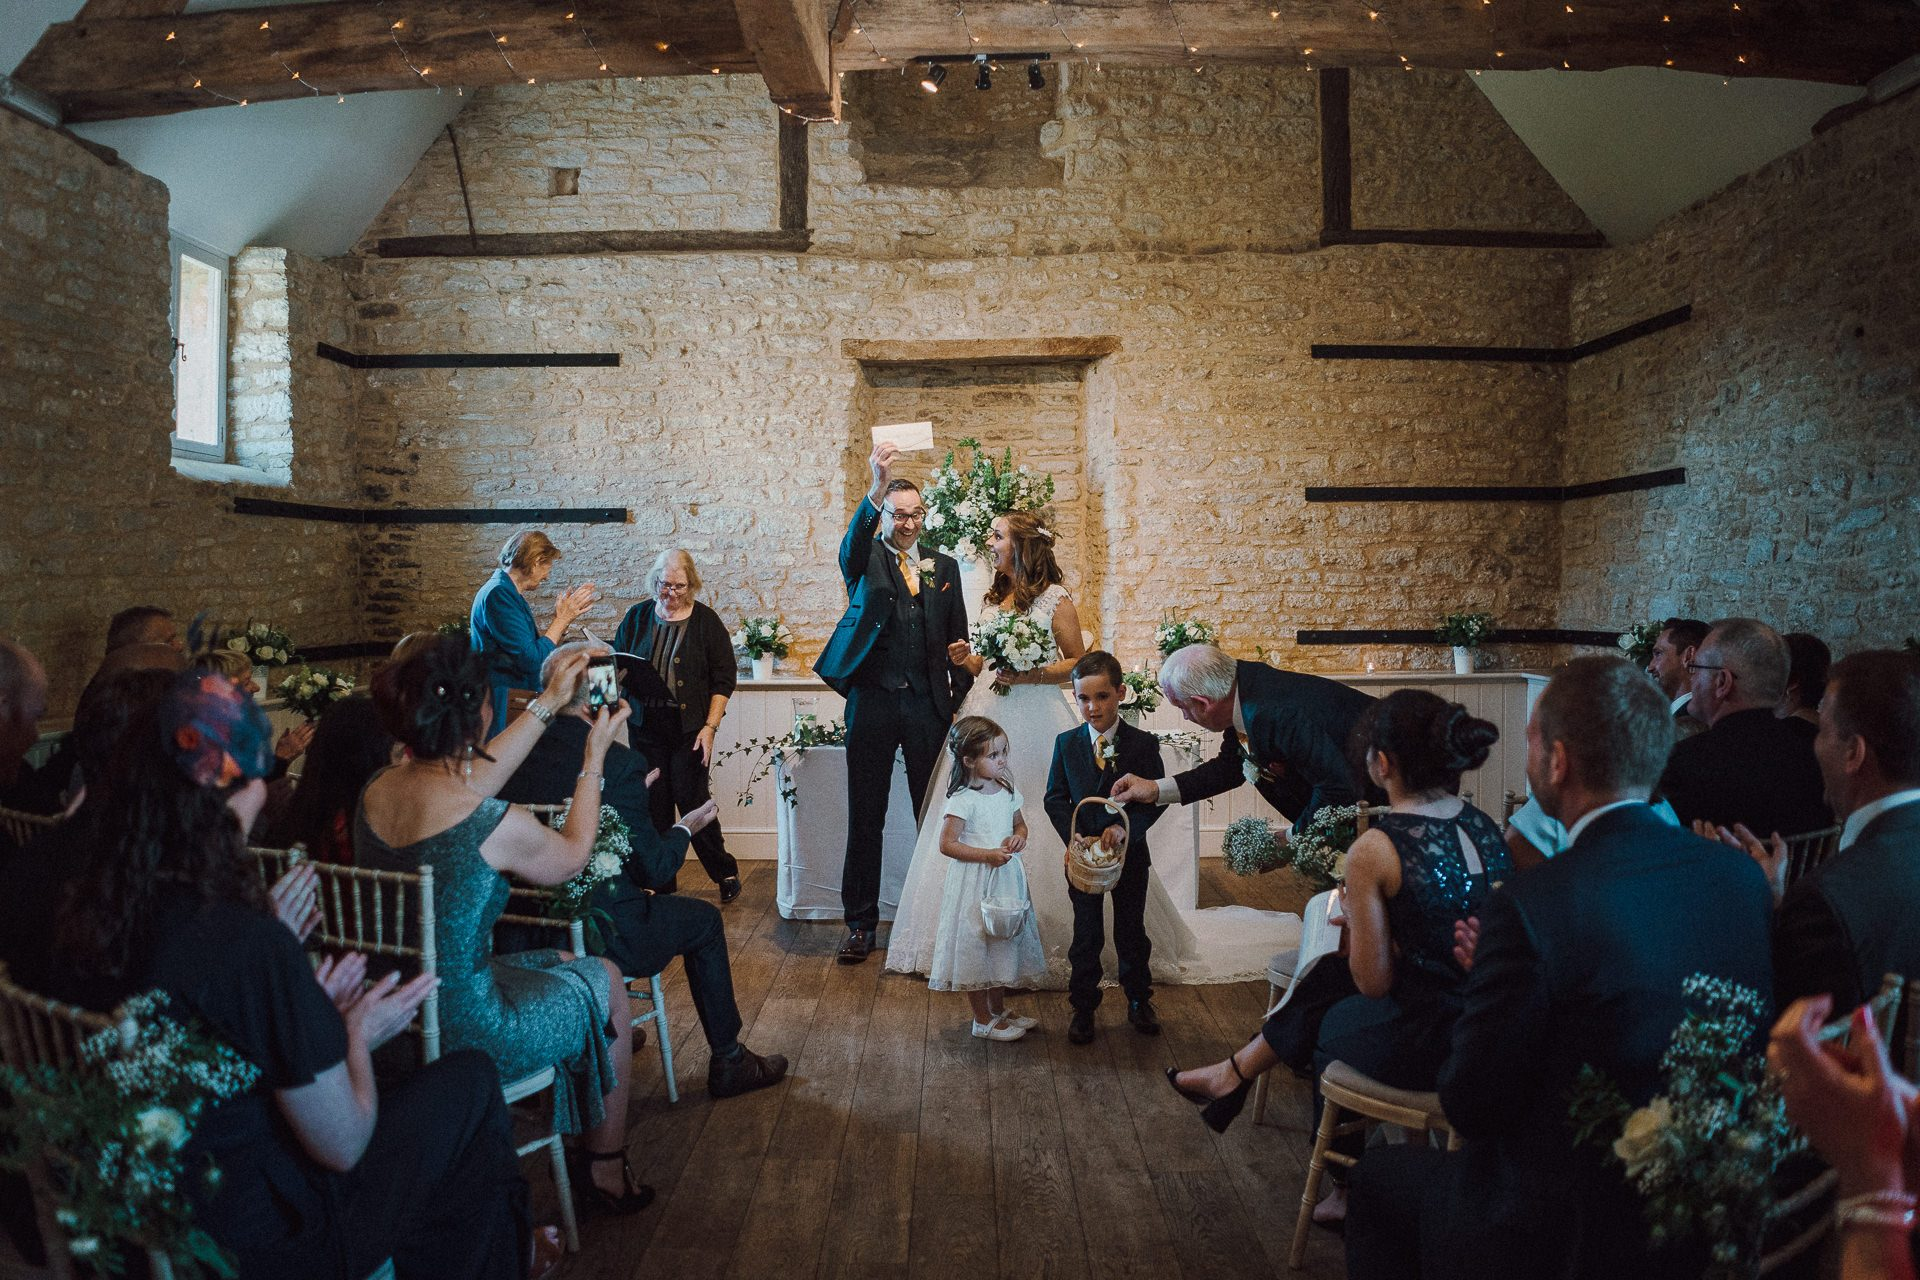 0001-DEVON-SOMERSET-WEDDING-PHOTOGRAPHER-0592-BEST-OF-2019-LOUISE-MAY-DEVON-SOMERSET-WEDDING-PHOTOGRAPHY-20190920-14-19-38-LM109658